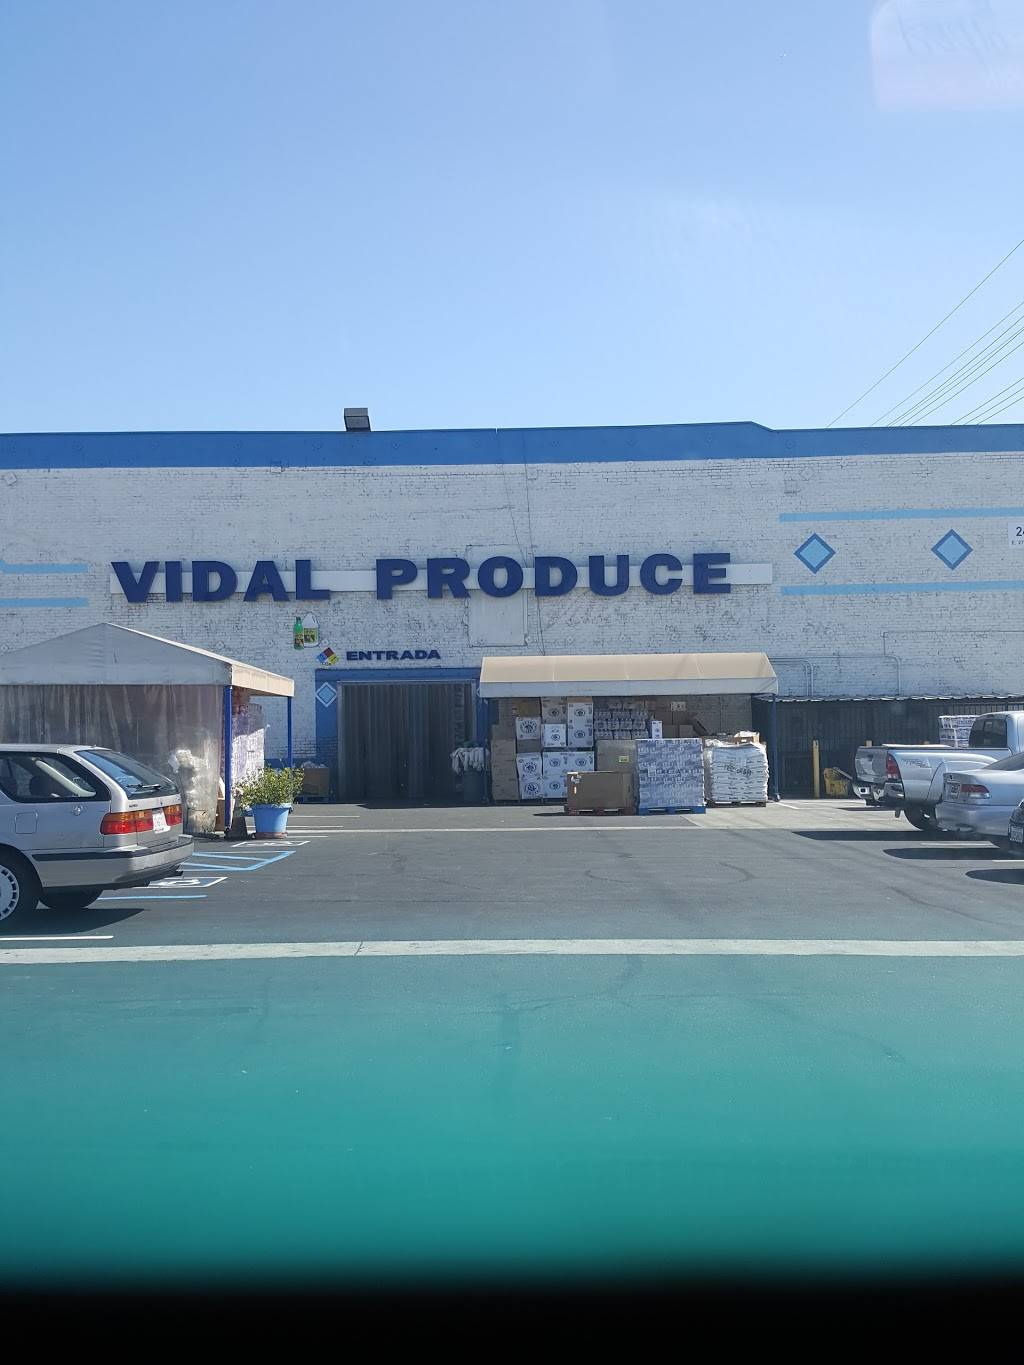 Vidal Produce Wholesale | meal takeaway | 2401 E 27th St, Vernon, CA 90058, USA | 3235871072 OR +1 323-587-1072